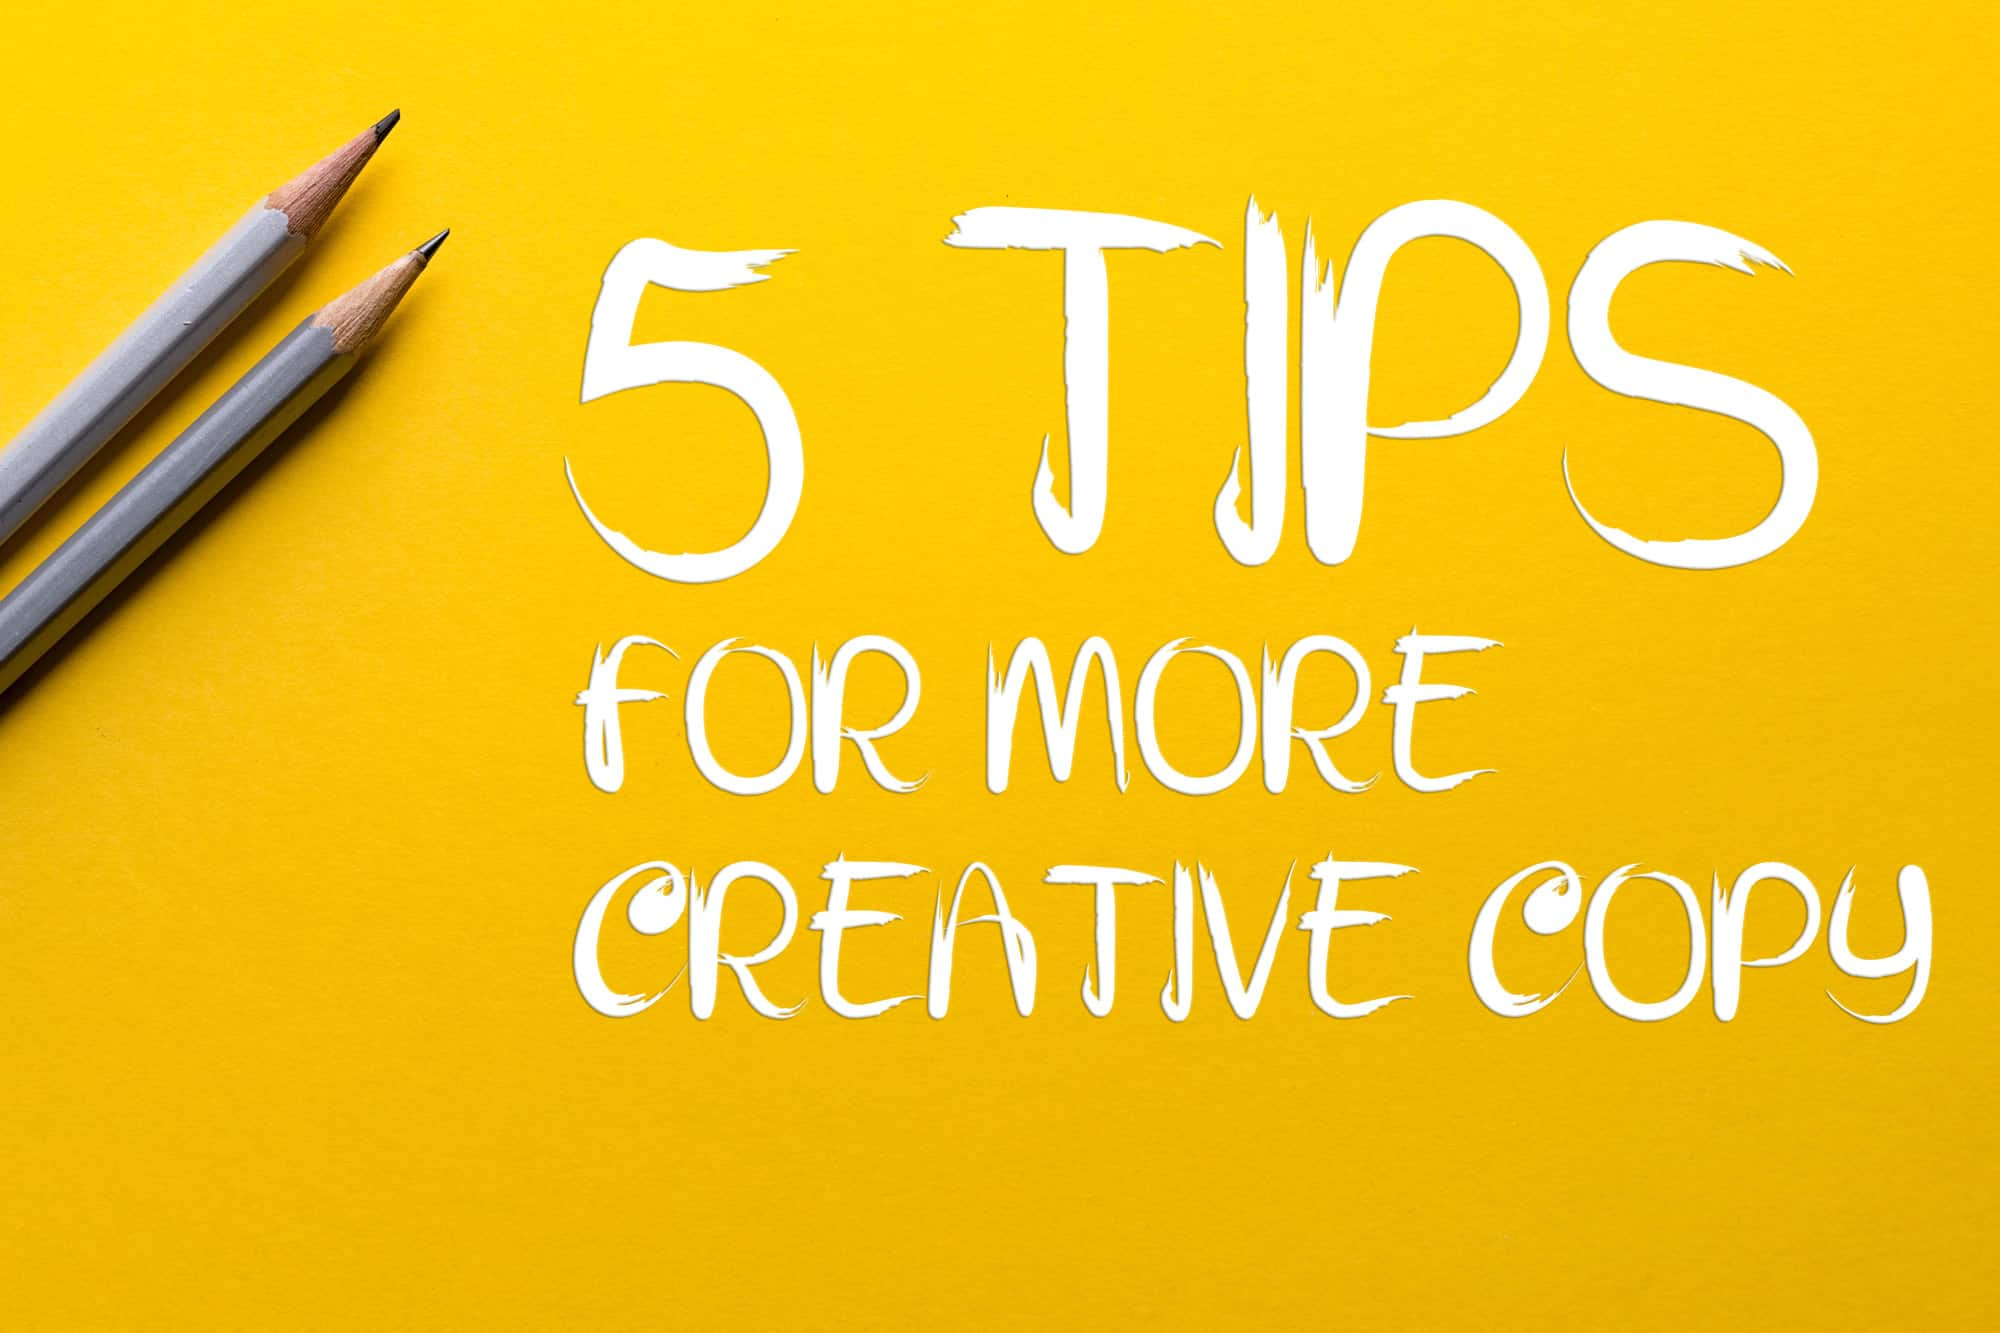 5 Tips for More Creative Copy